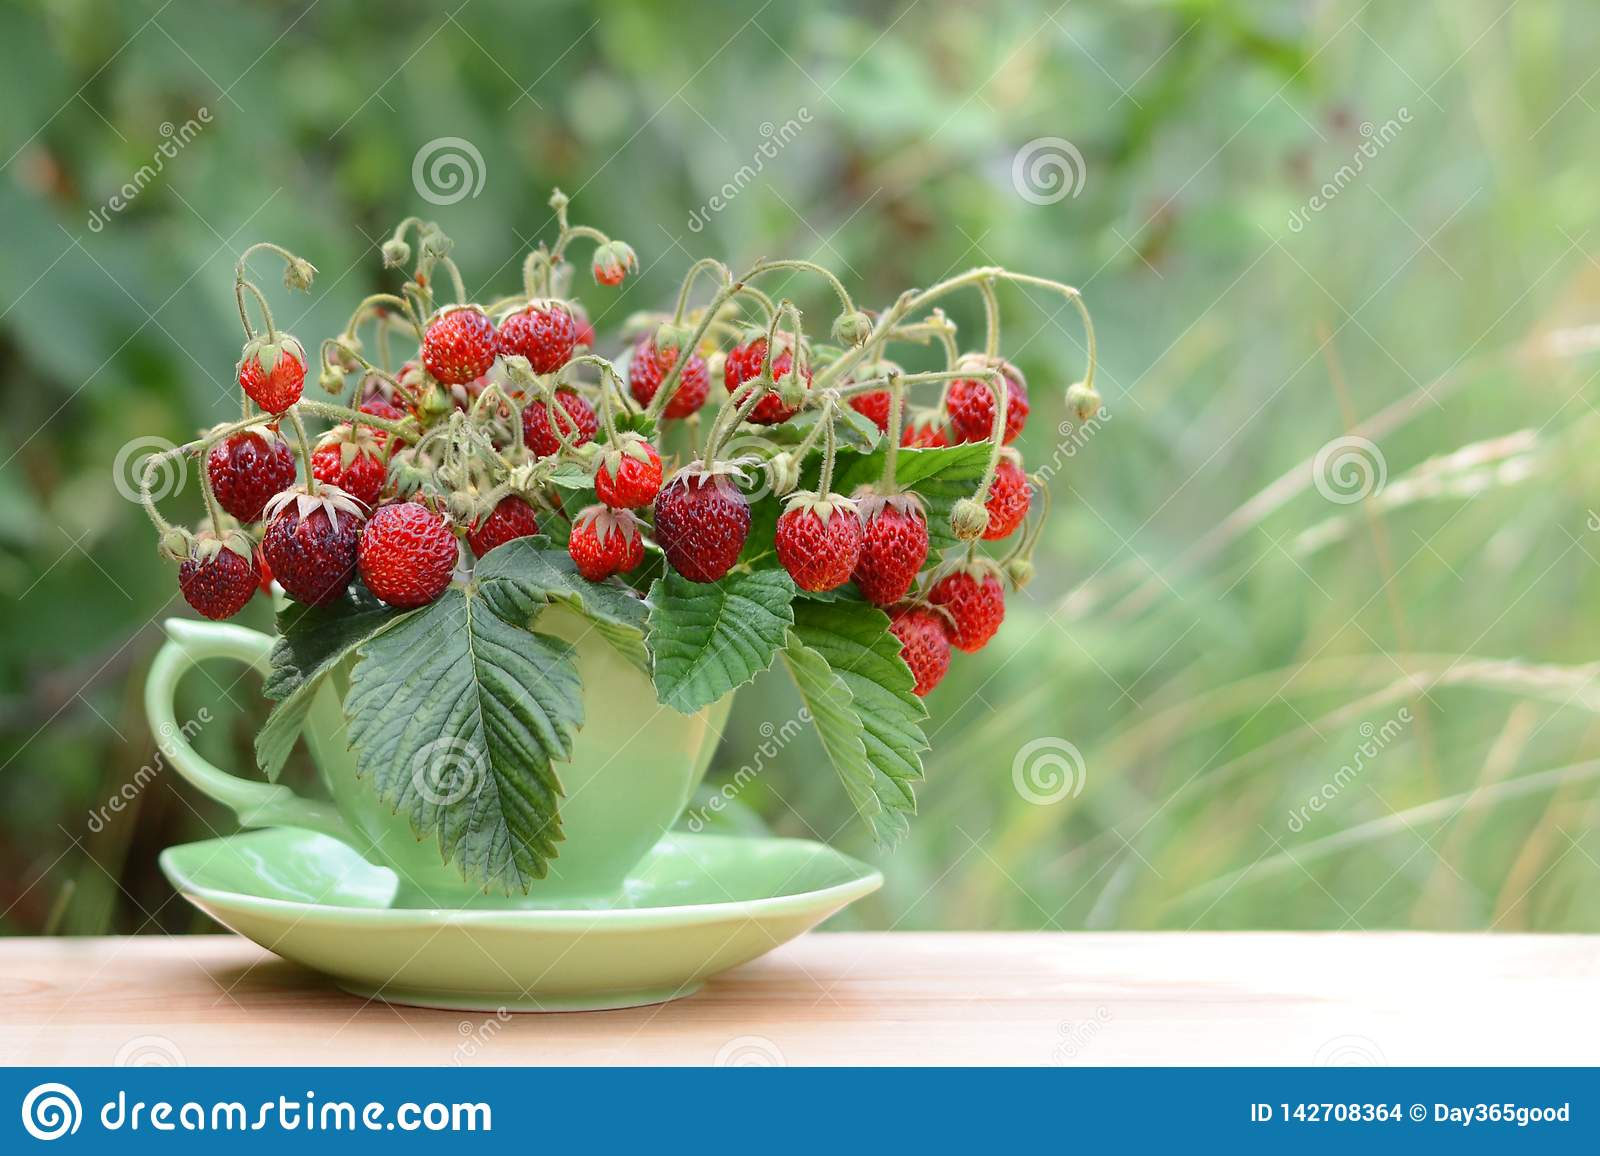 Strawberries in cup on green background. Summer natural background